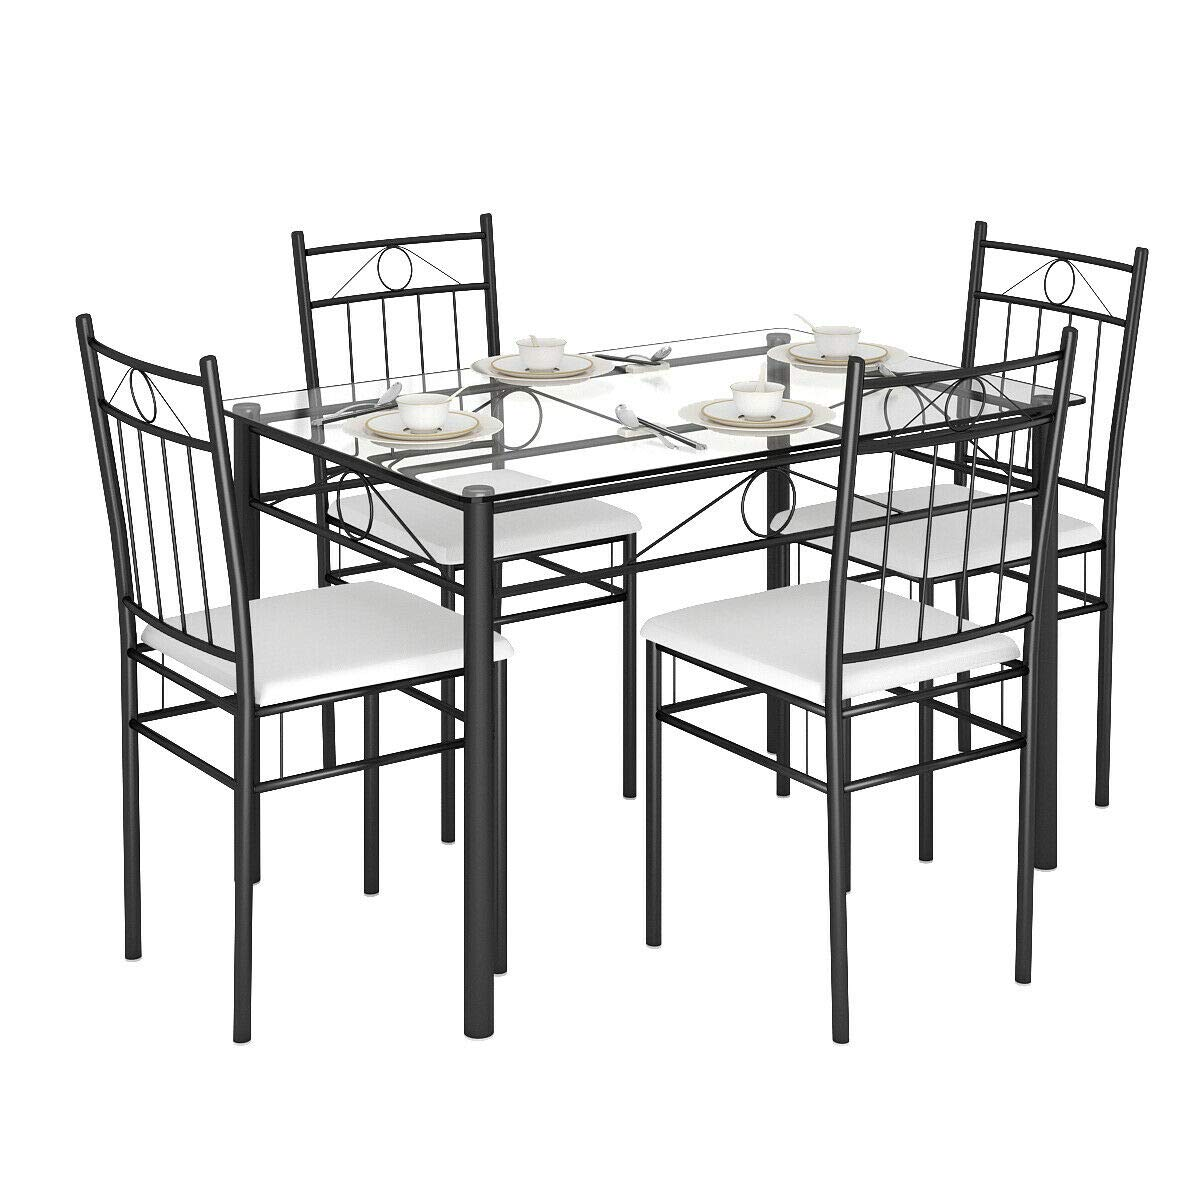 Tangkula 5 Piece Dining Table Set Glass Top Metal Dining Set Kitchen Breakfast Furniture Dinning Table with Chairs by Tangkula